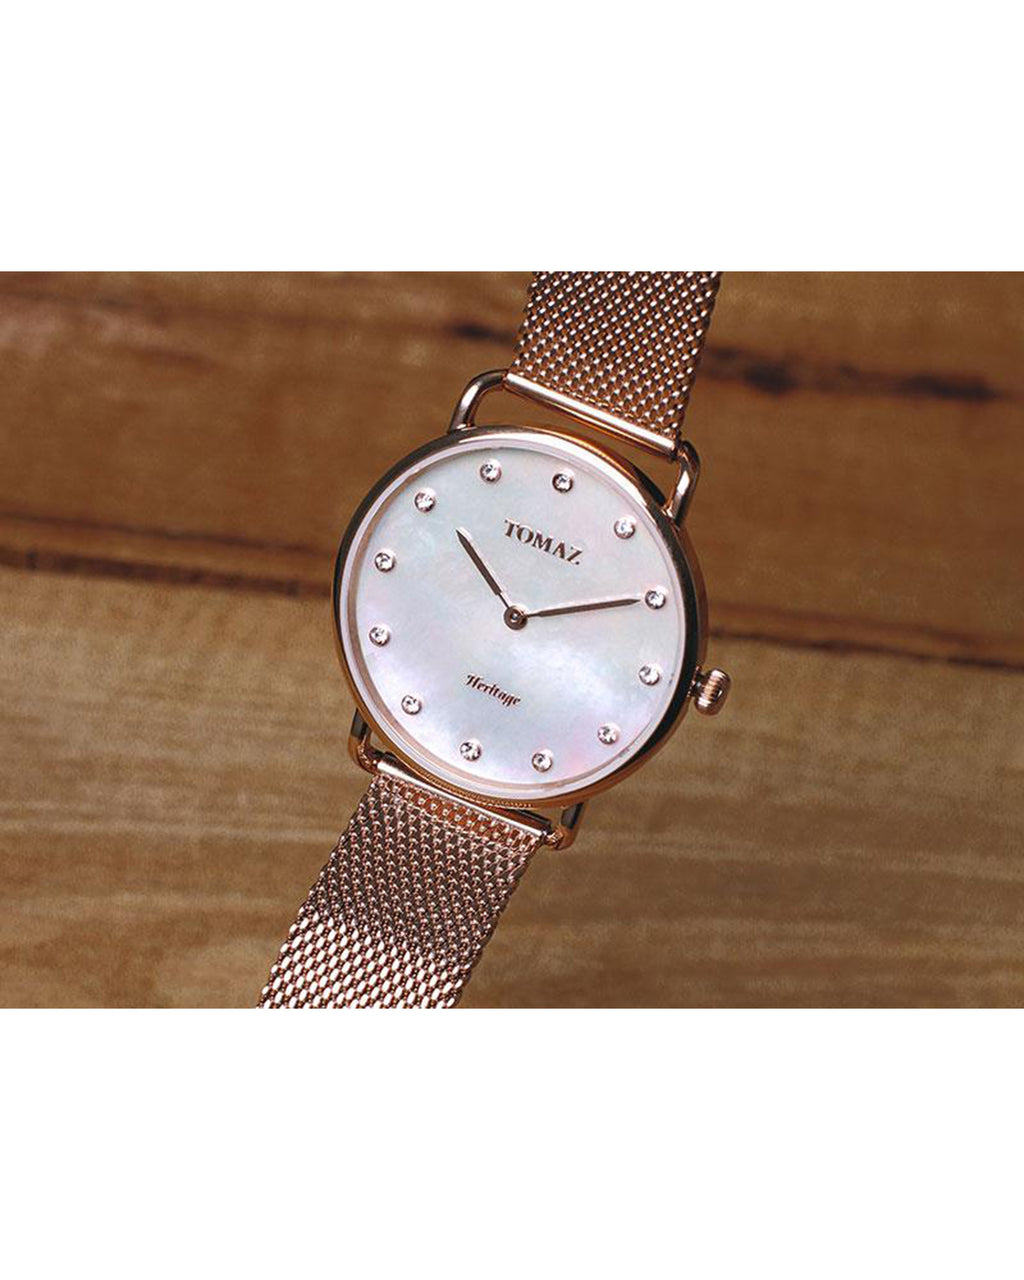 Tomaz Ladies Watch G1L-D4 (Rose Gold/White Marble)